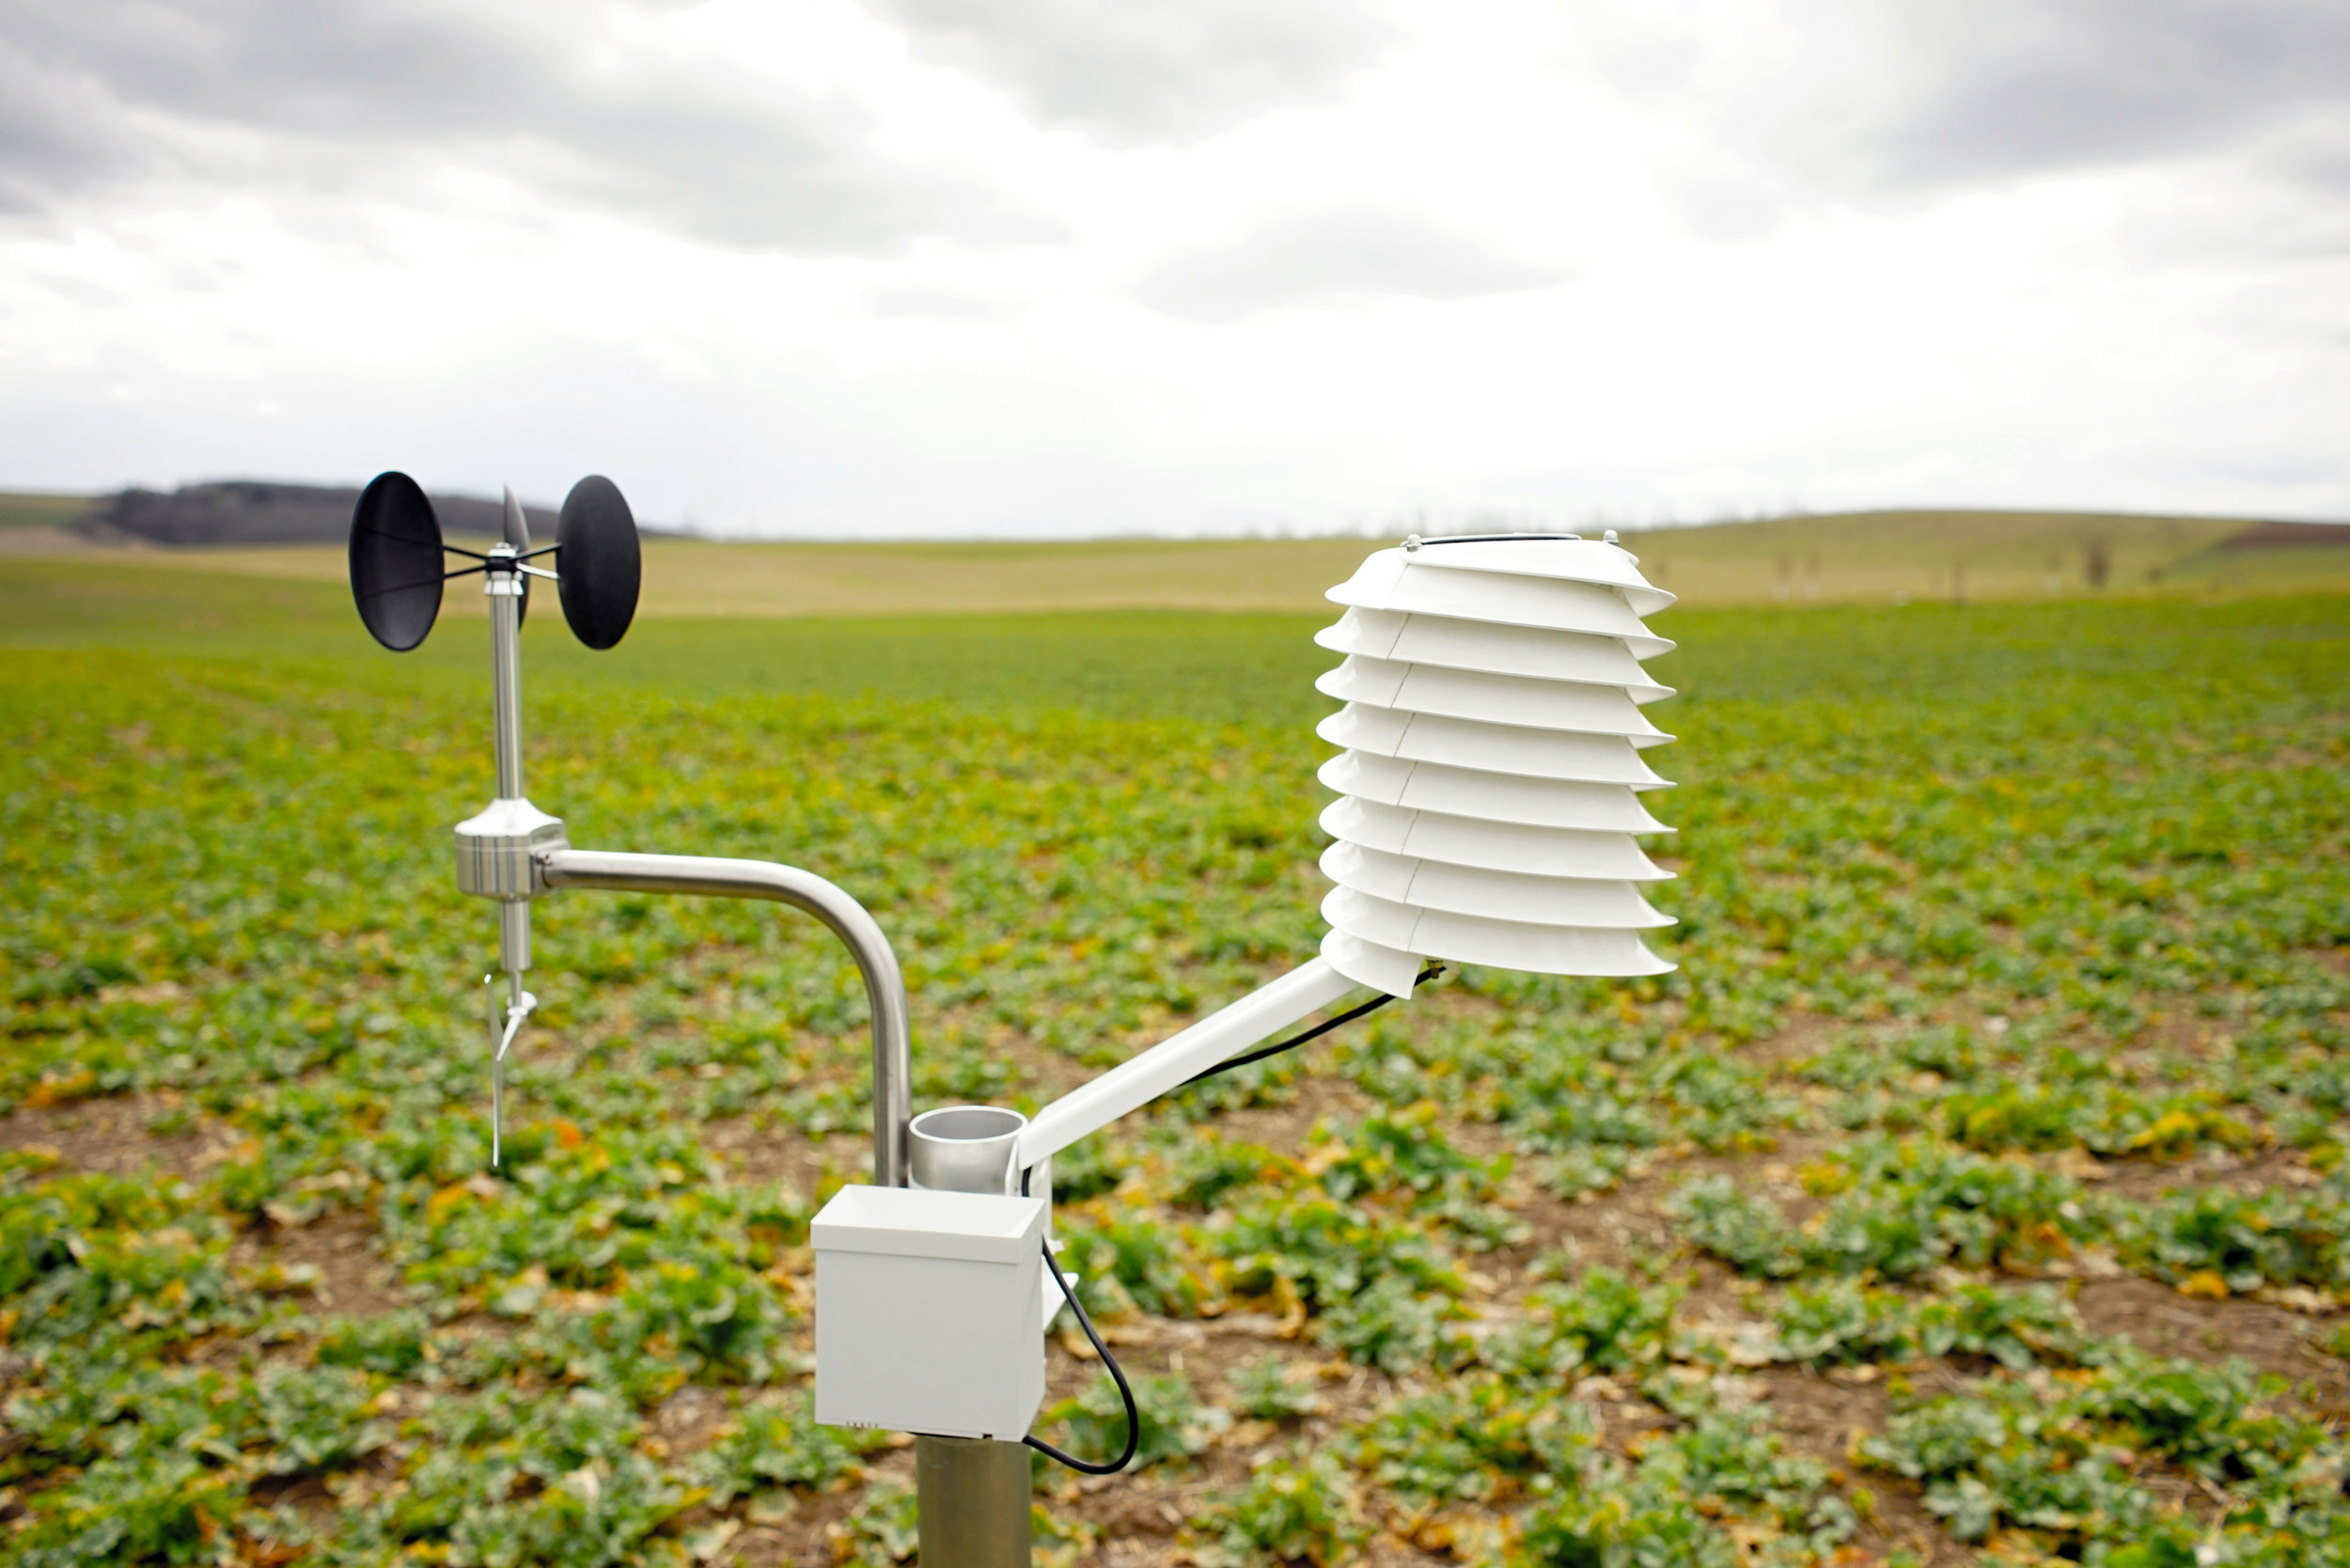 Agricultural weather station with a wind sensor, rain gauge and helical radiation shield.